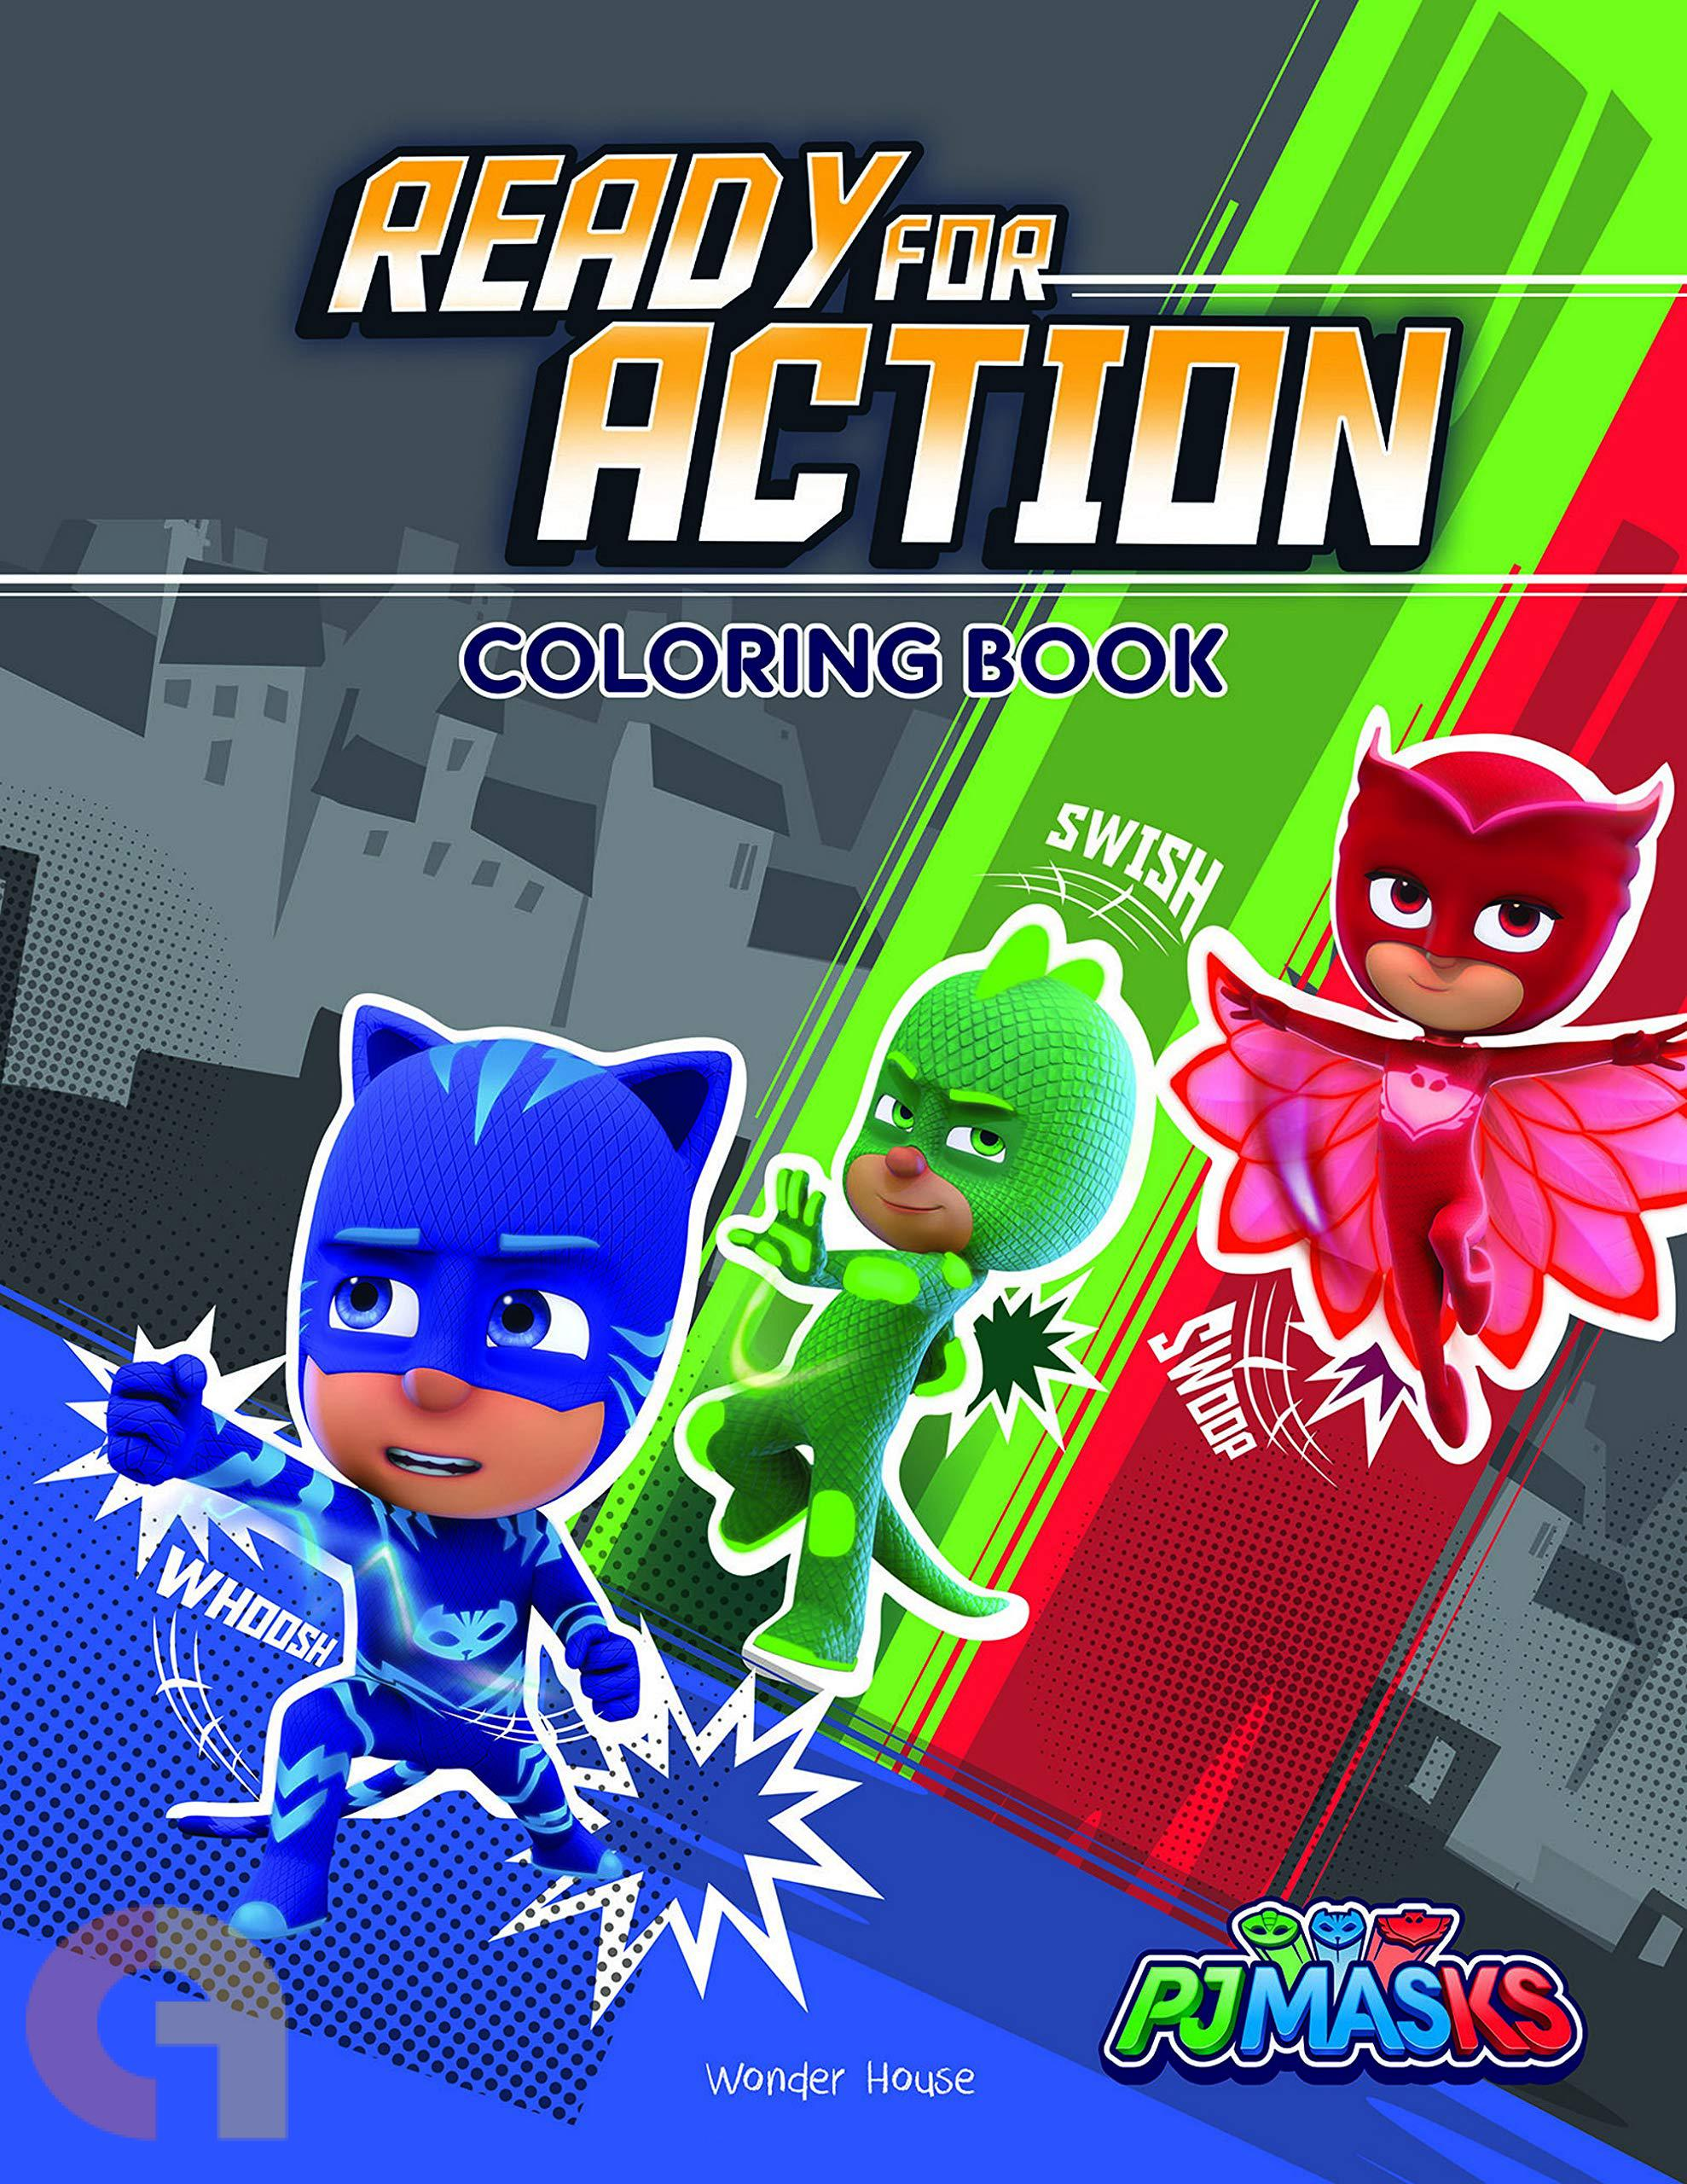 PJ Masks: Ready For Action